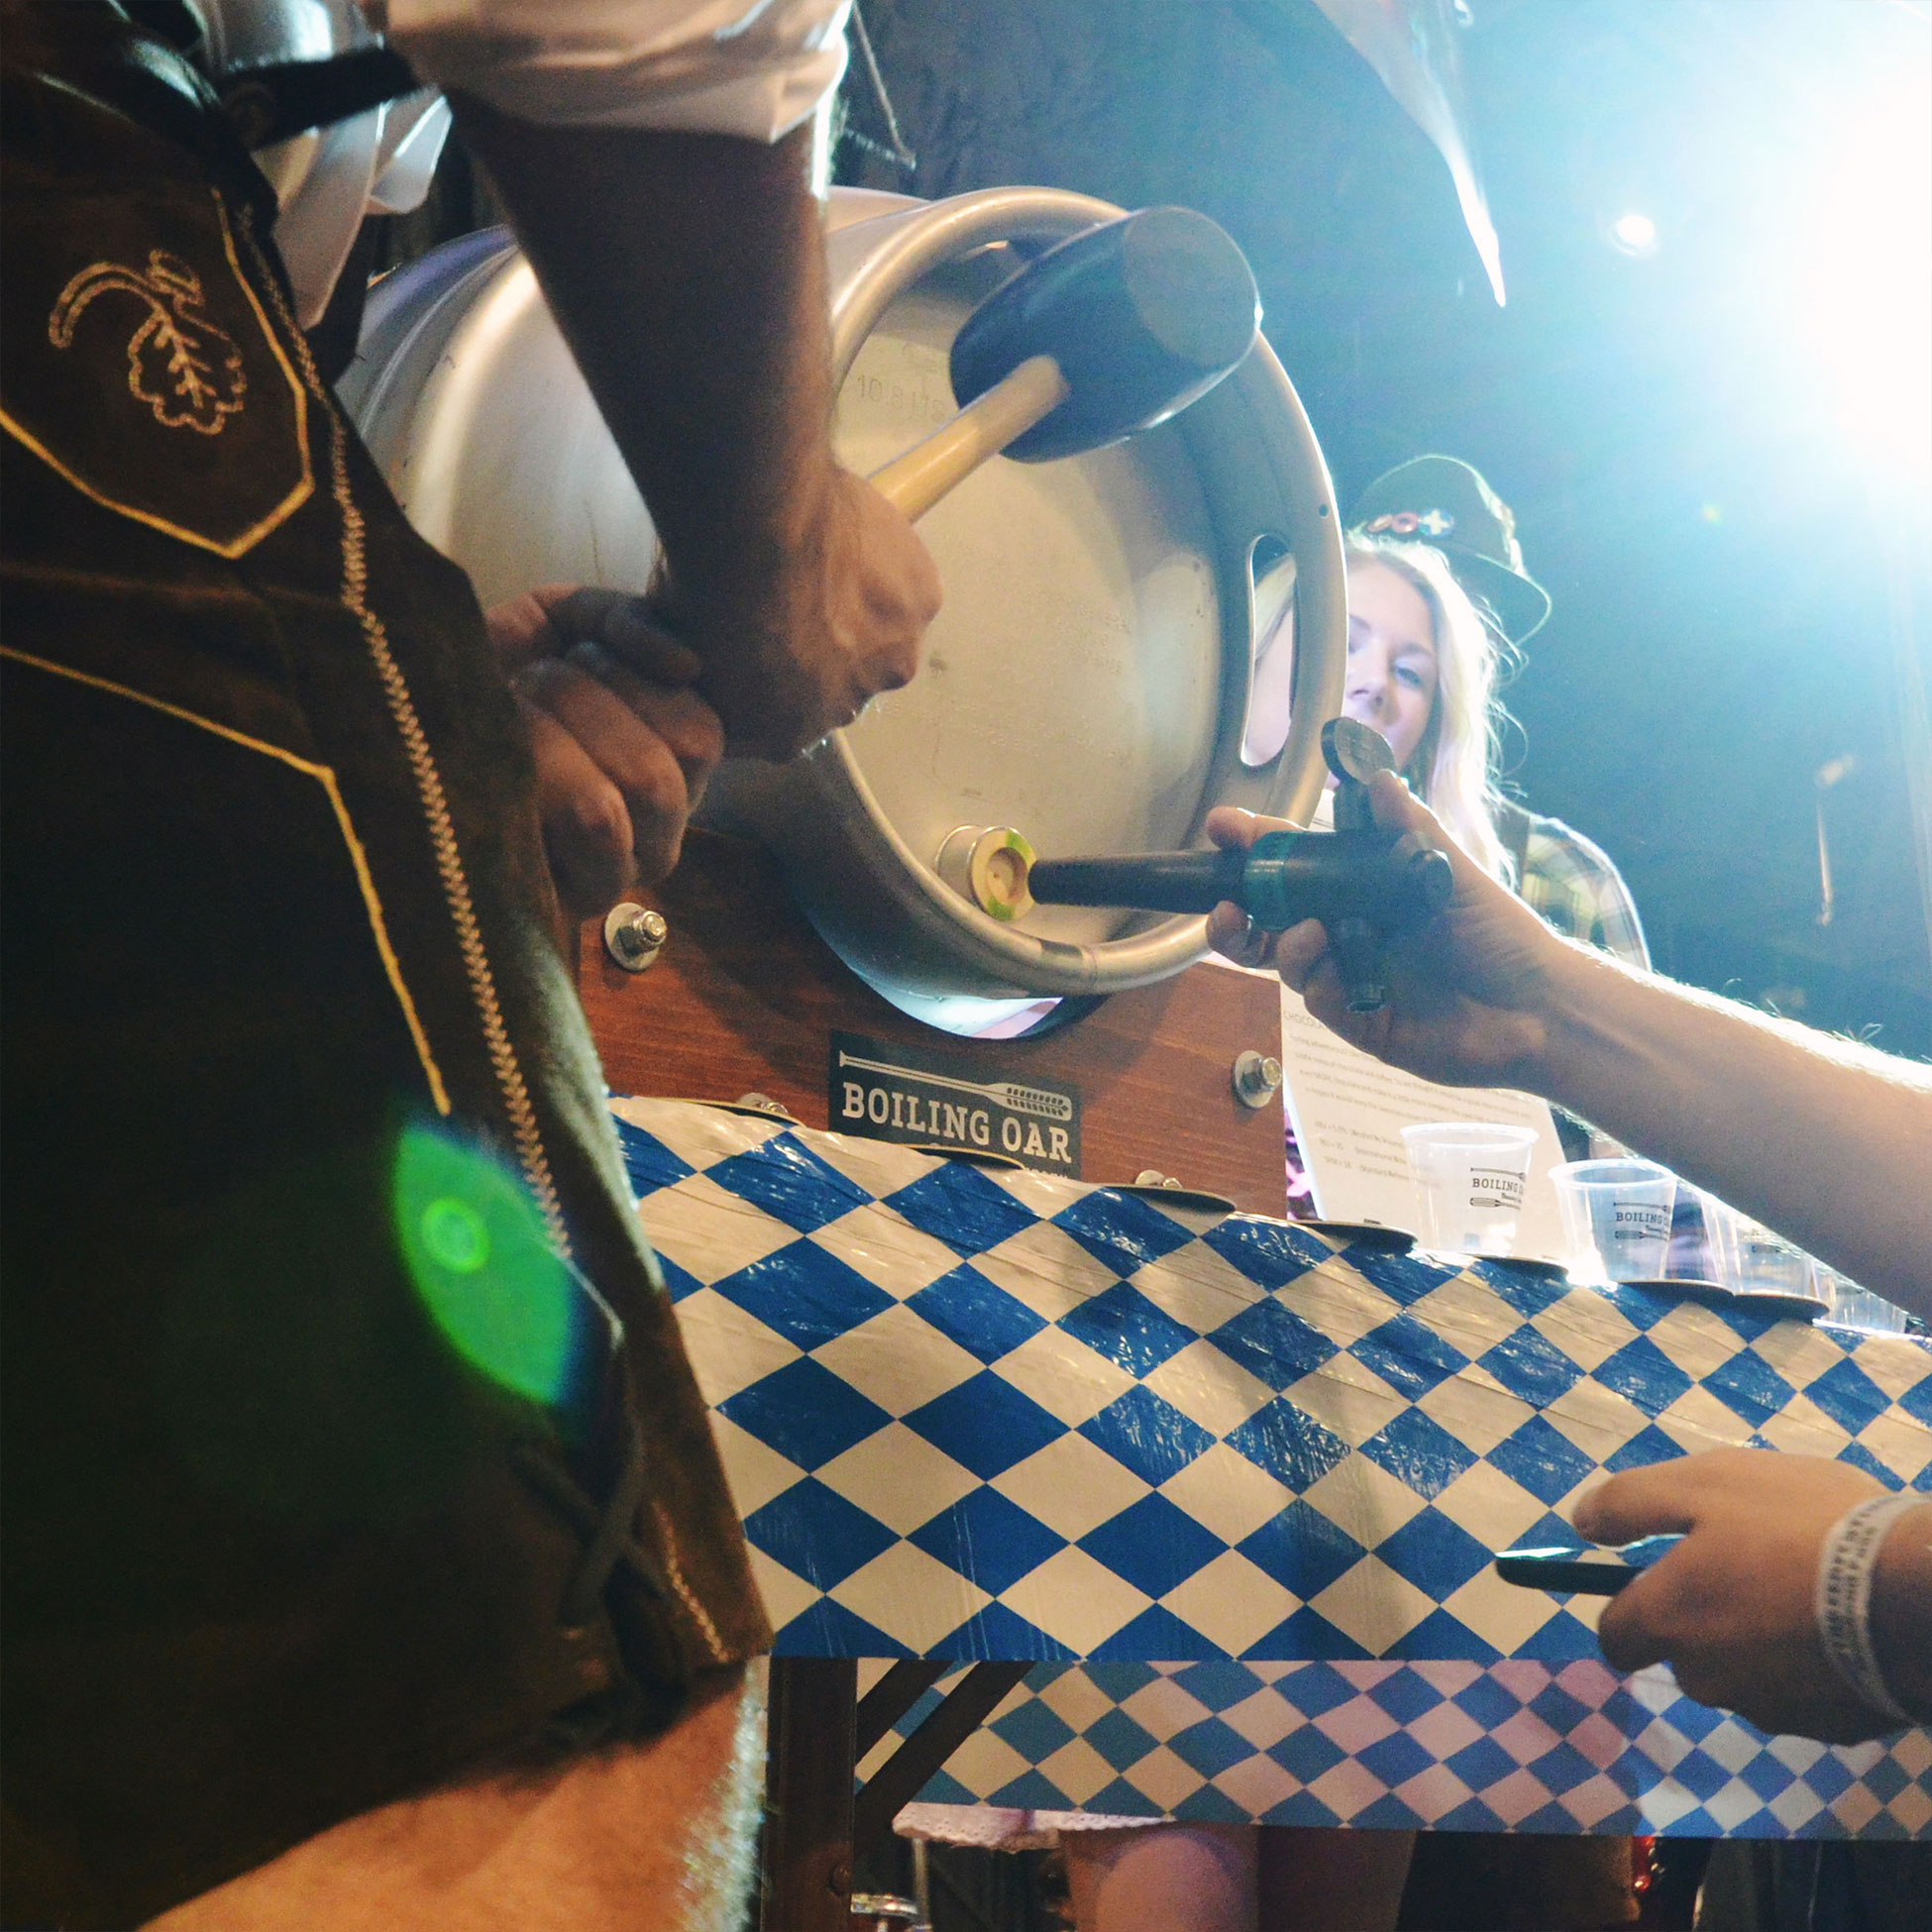 free-beer-images-keg-cask-tapping-creative-commons-cc-oktoberfest-photos